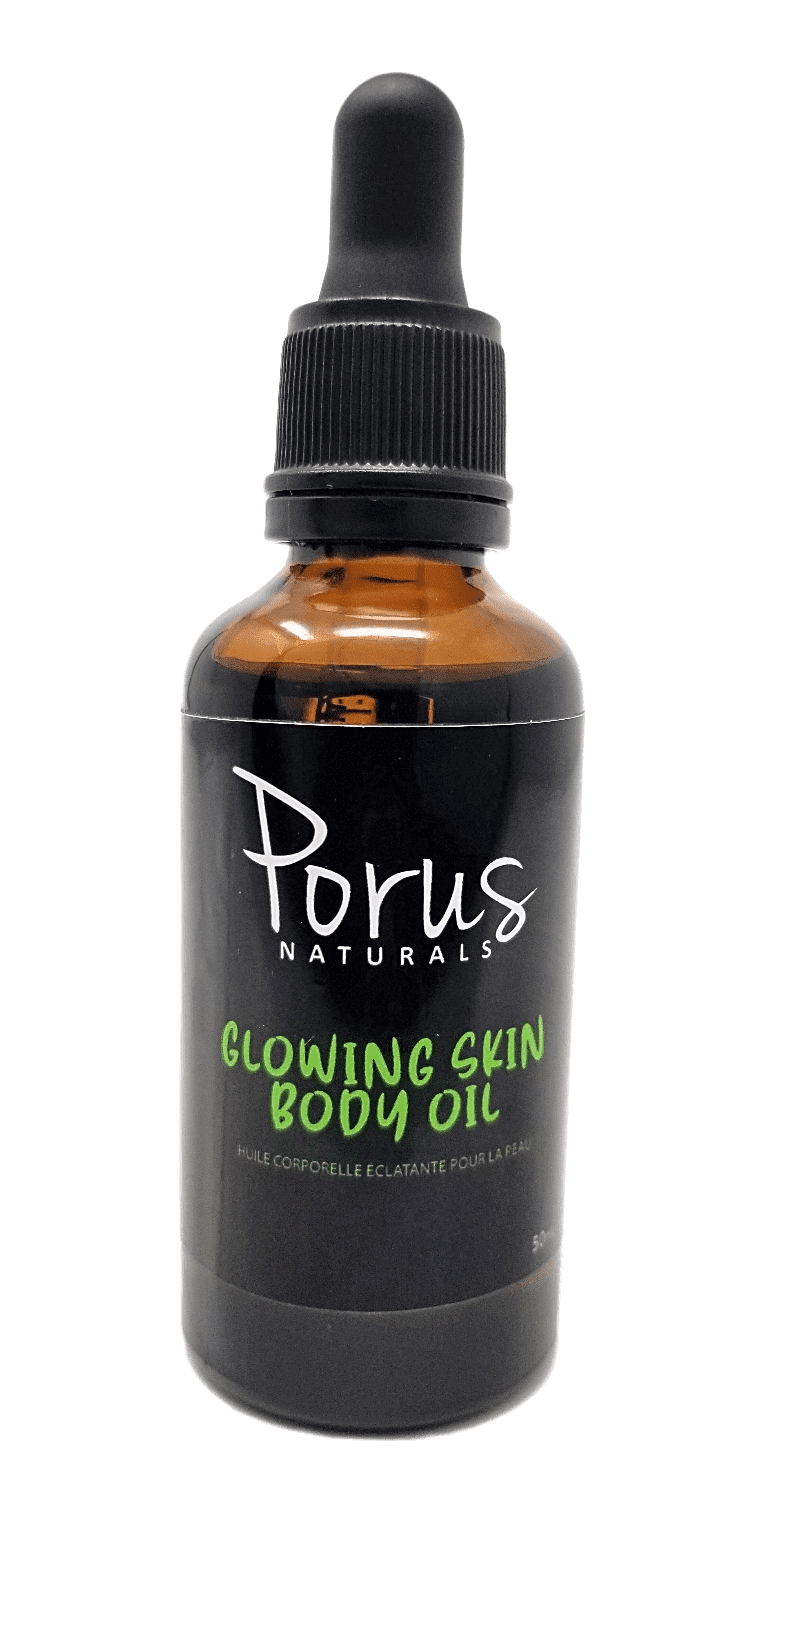 Glowing Skin Body Oil